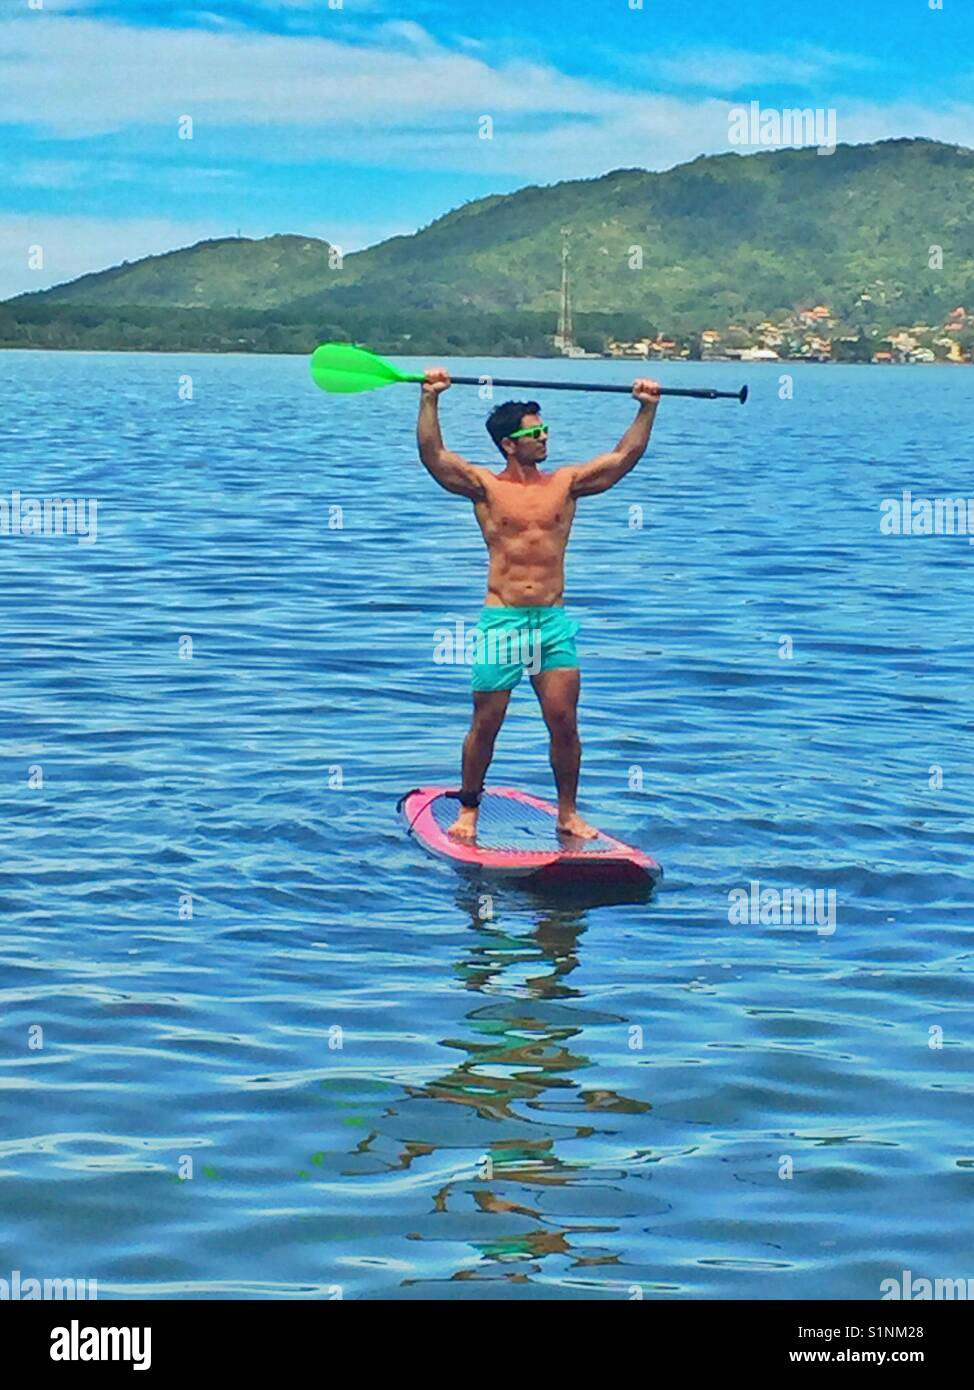 Standup paddles in the lake - Stock Image